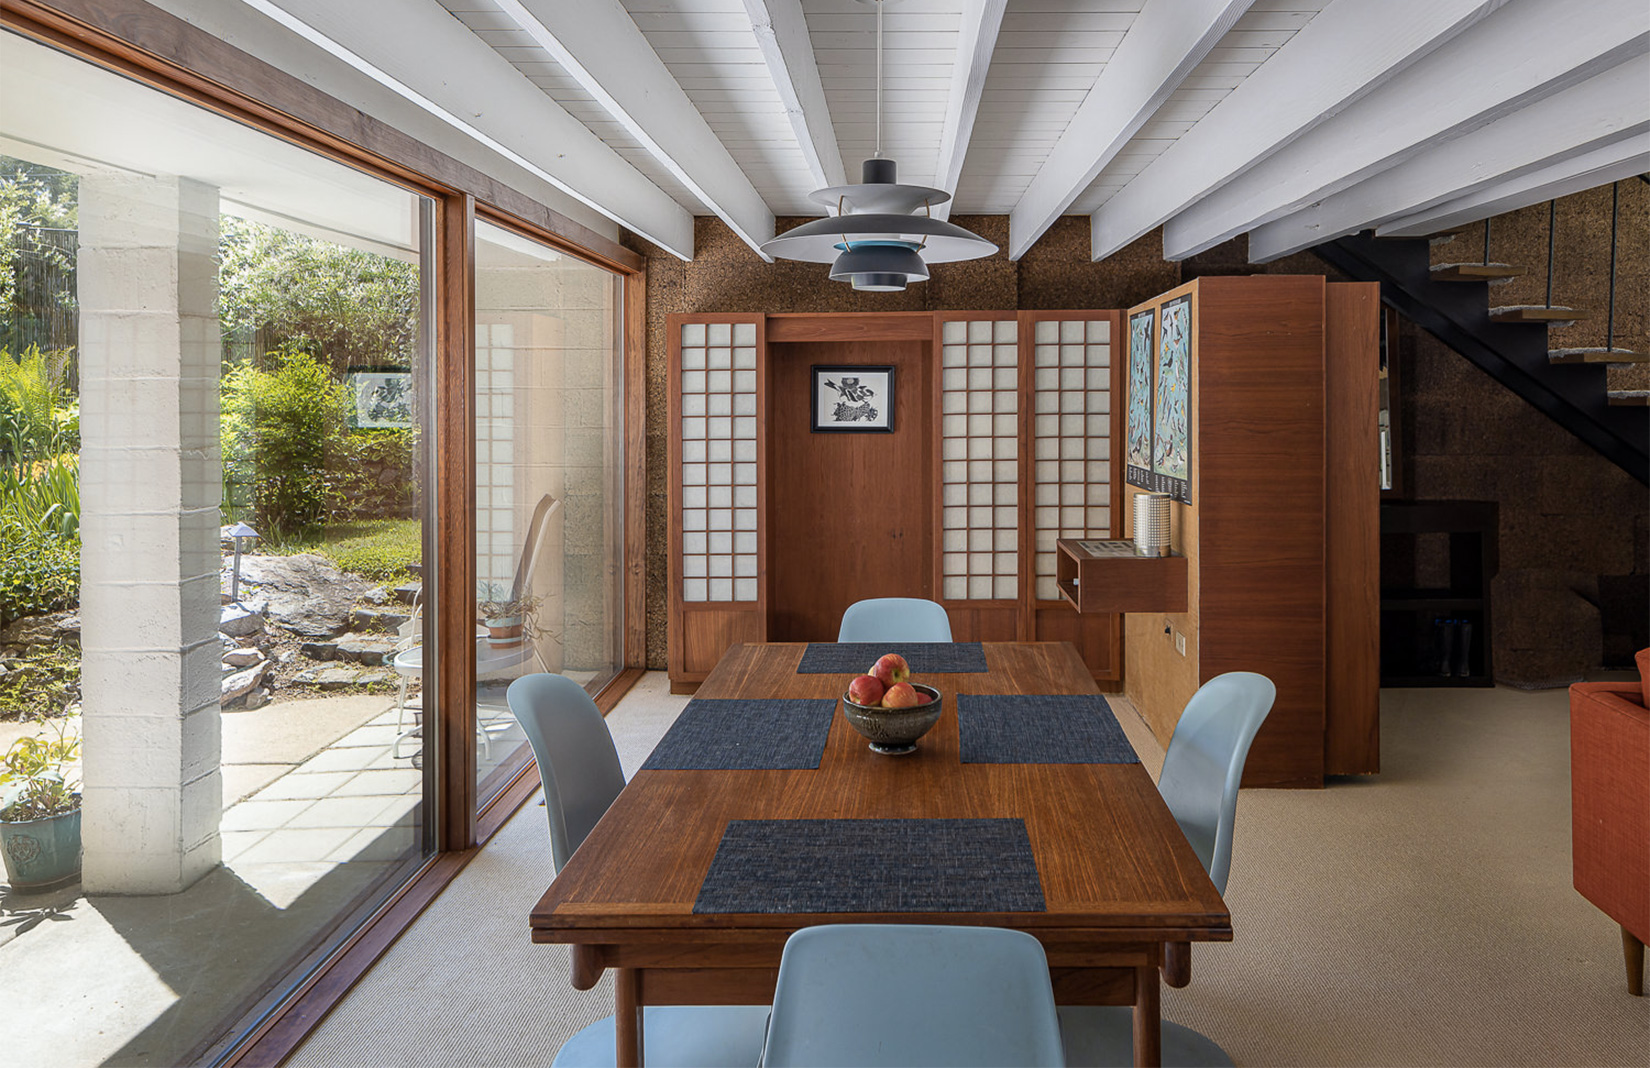 Midcentury style is alive and well Carner House – a $450k home in Philadelphia